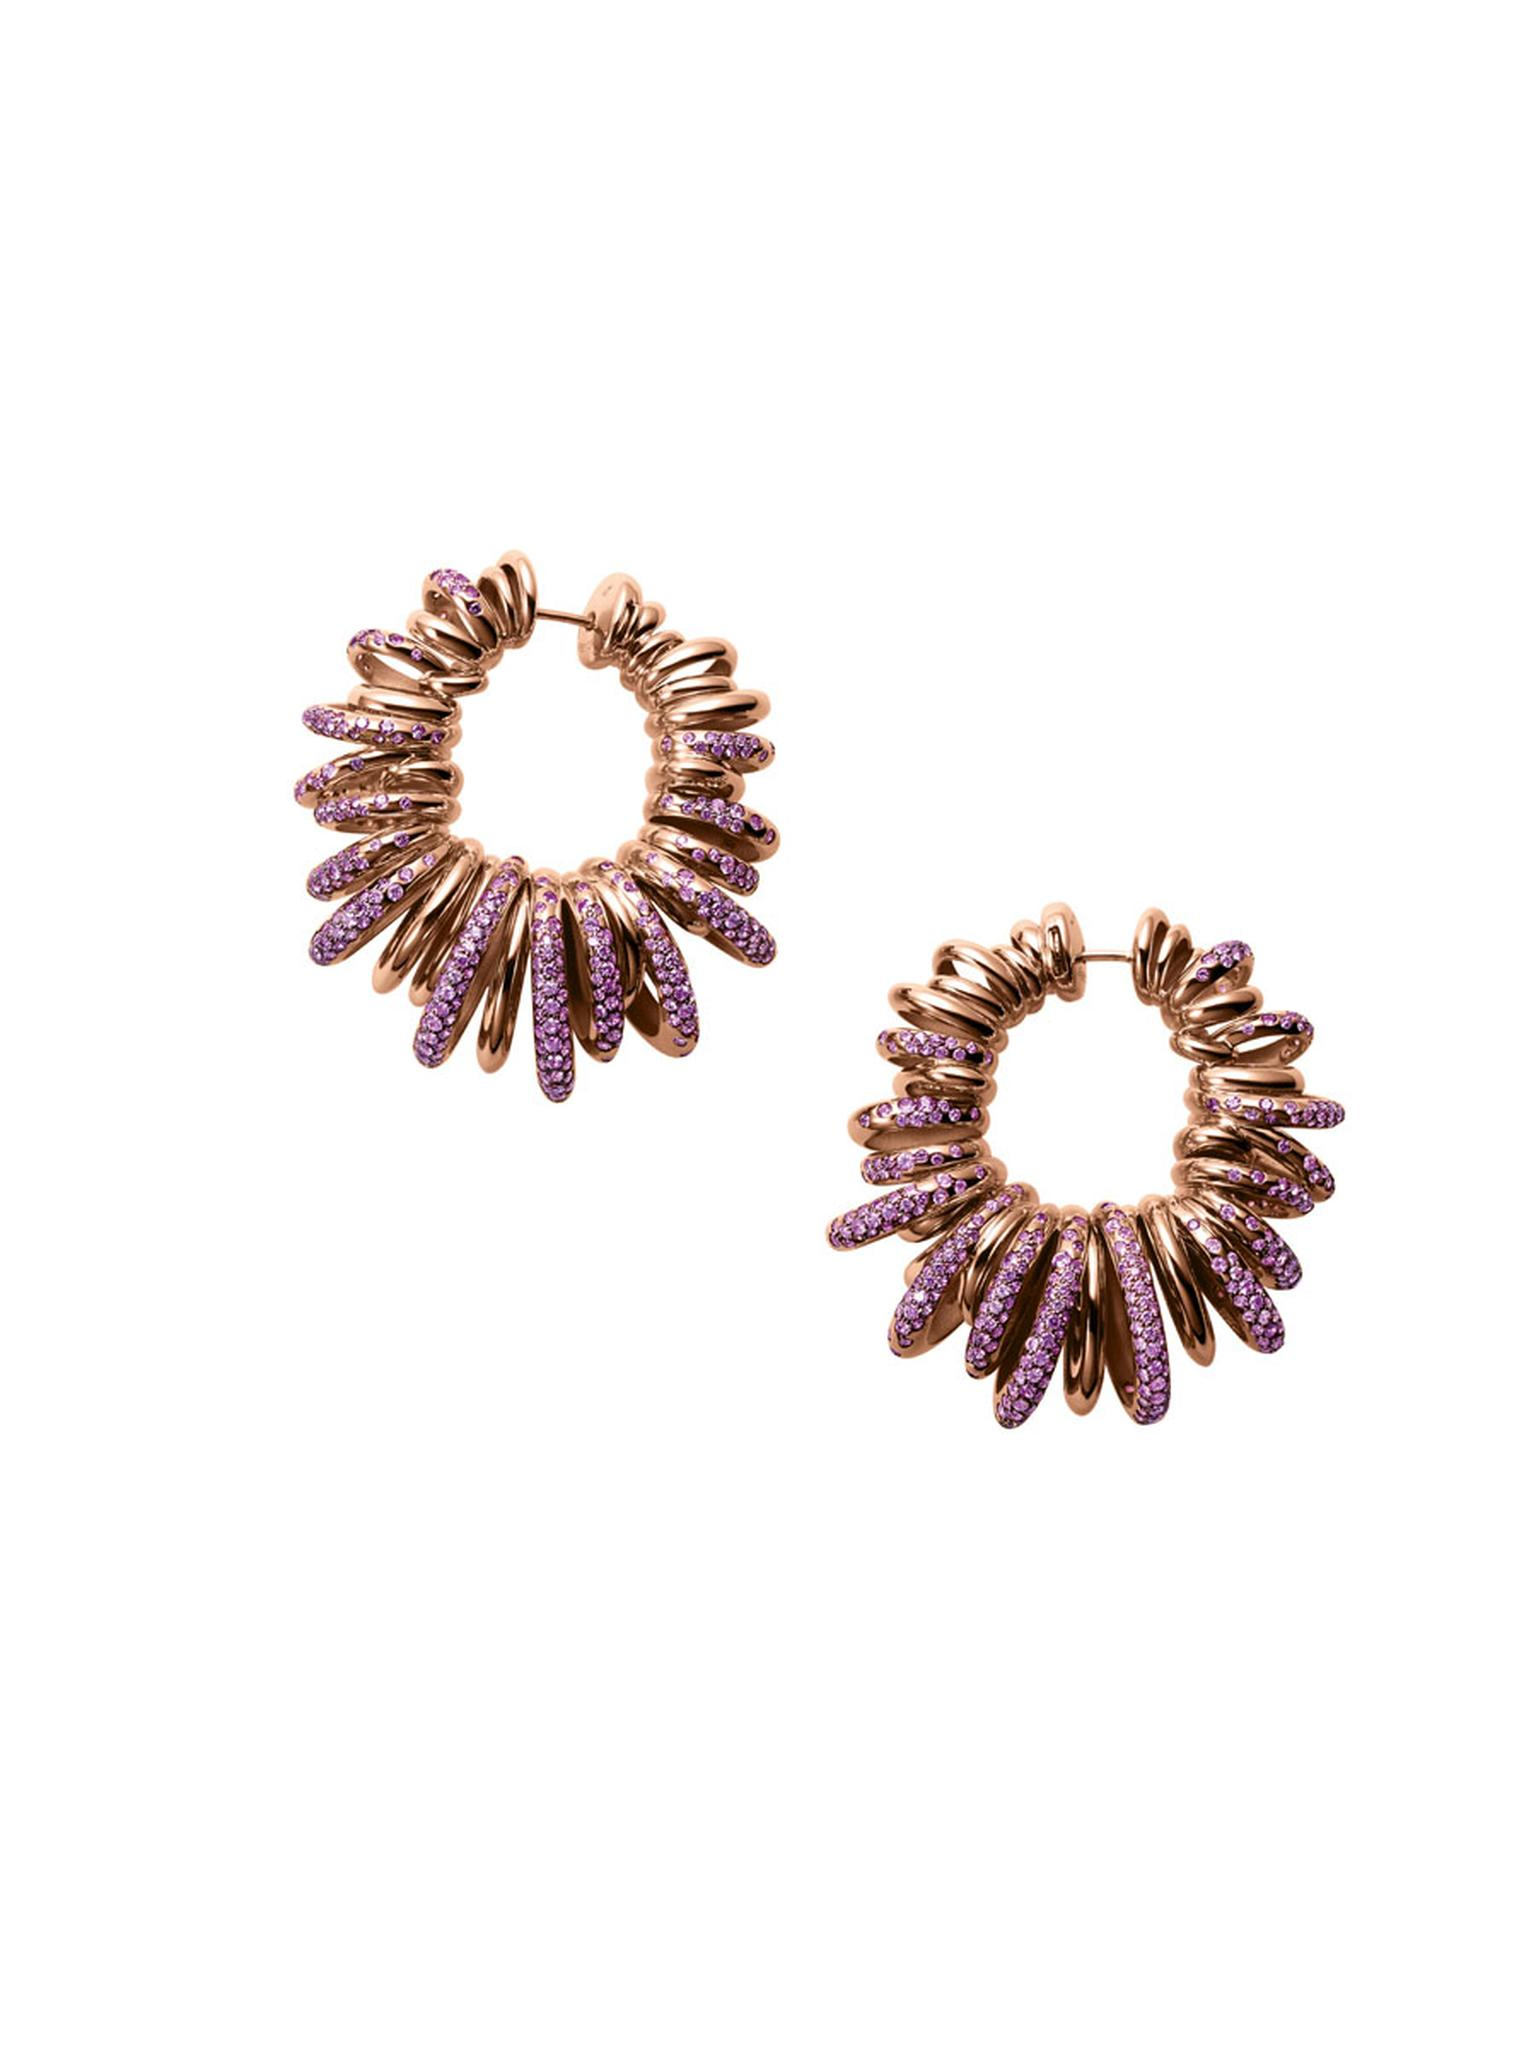 Another pair of earrings from the 'Sole' collection.